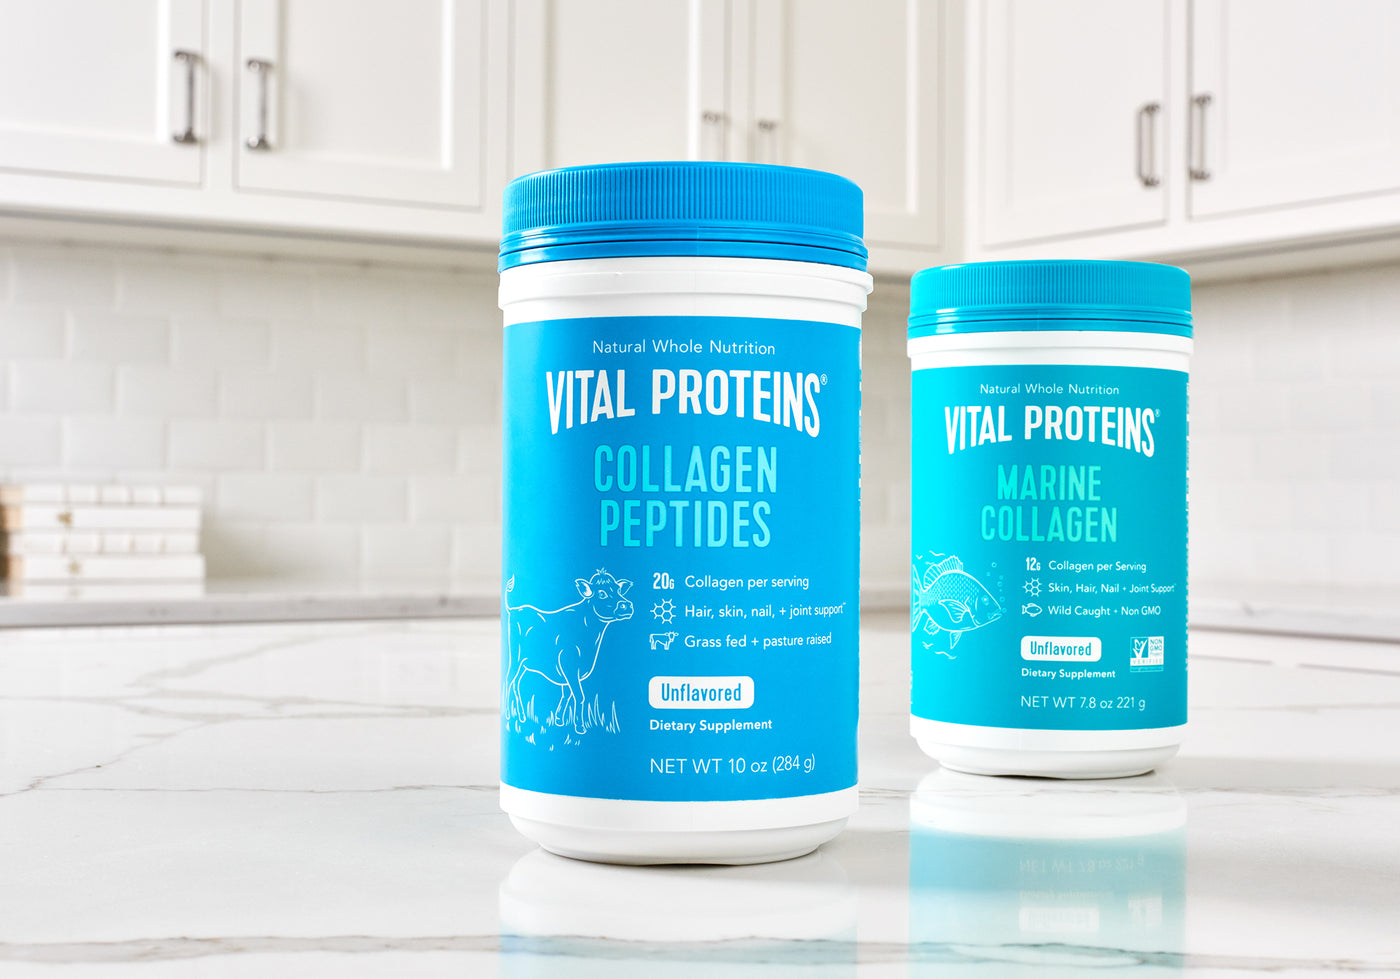 Collagen Peptides vs  Marine Collagen: What's the Difference